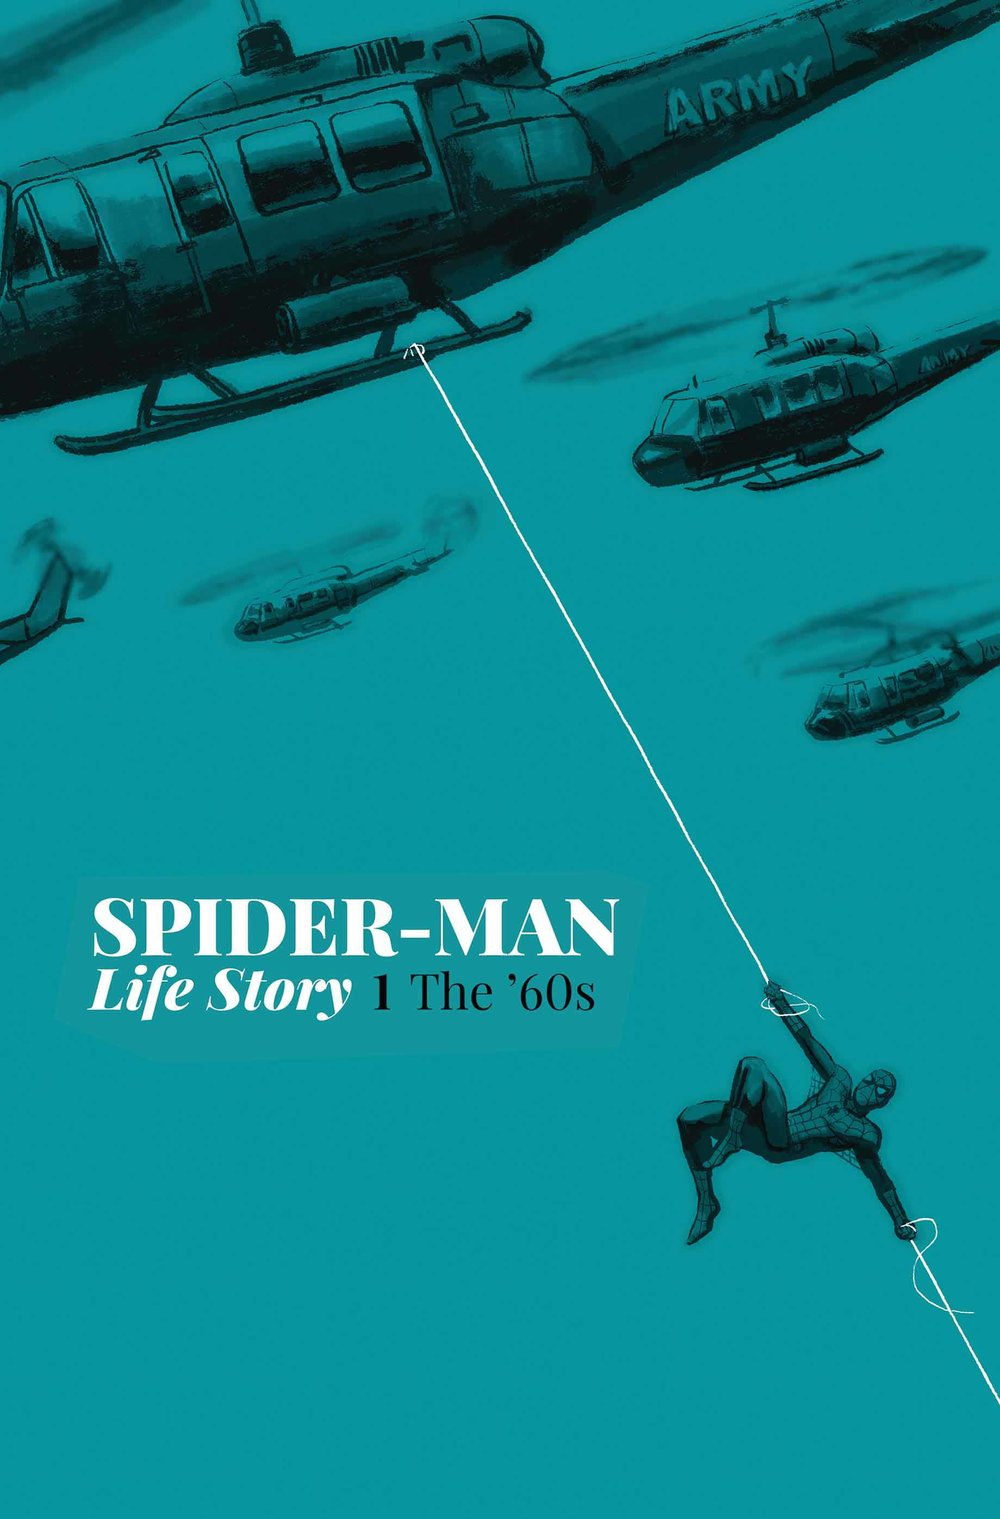 SPIDER-MAN LIFE STORY 1 of 6.jpg